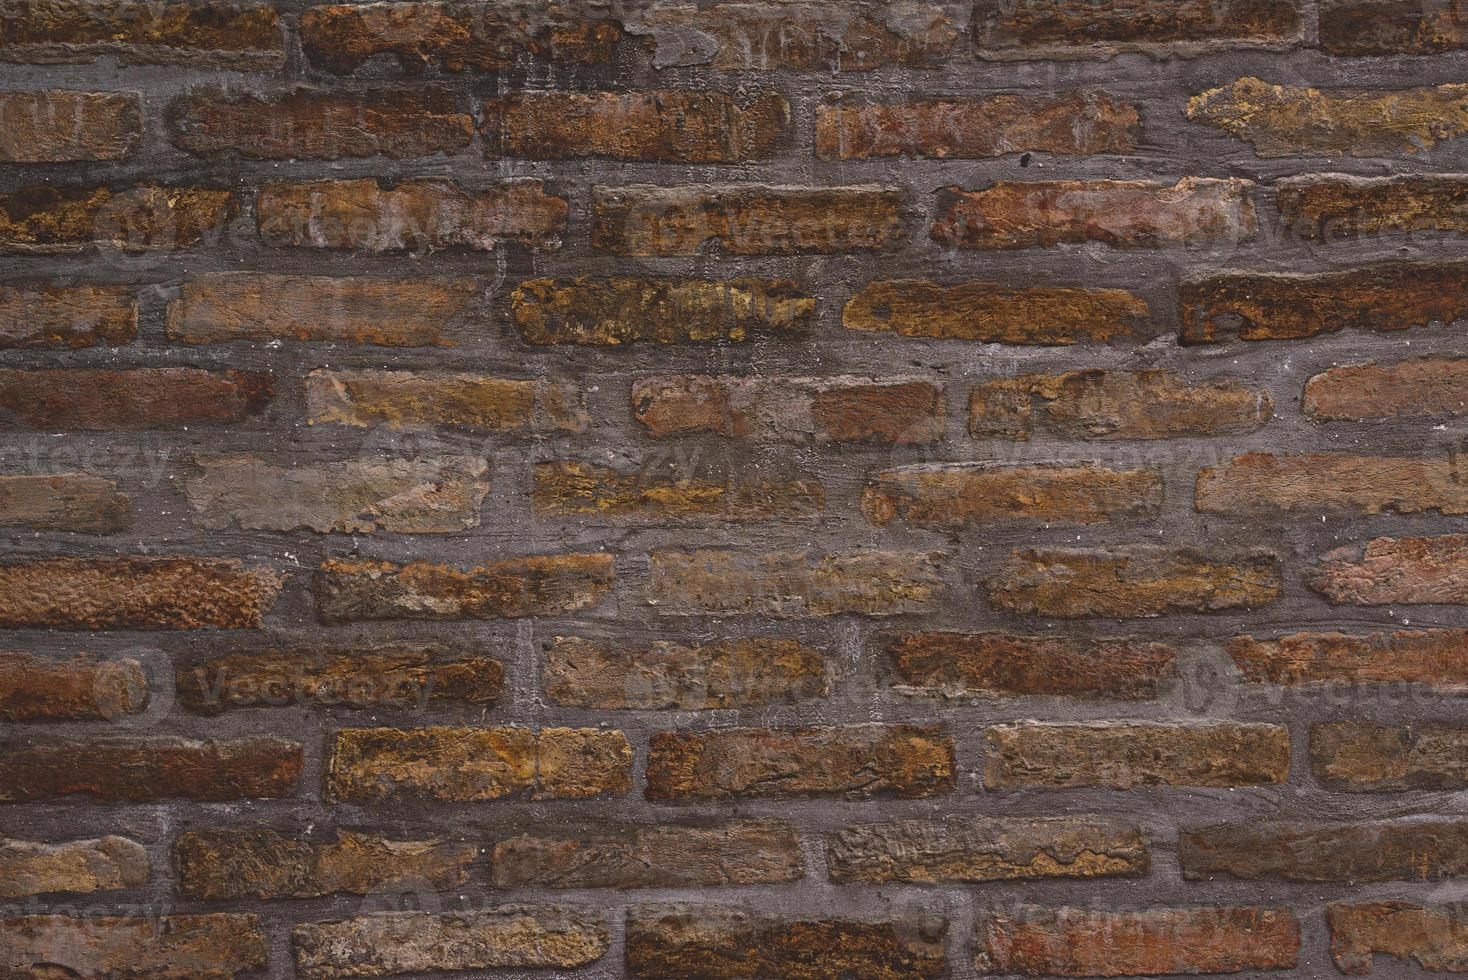 Background Pattern of Old Brick Wall Texture photo